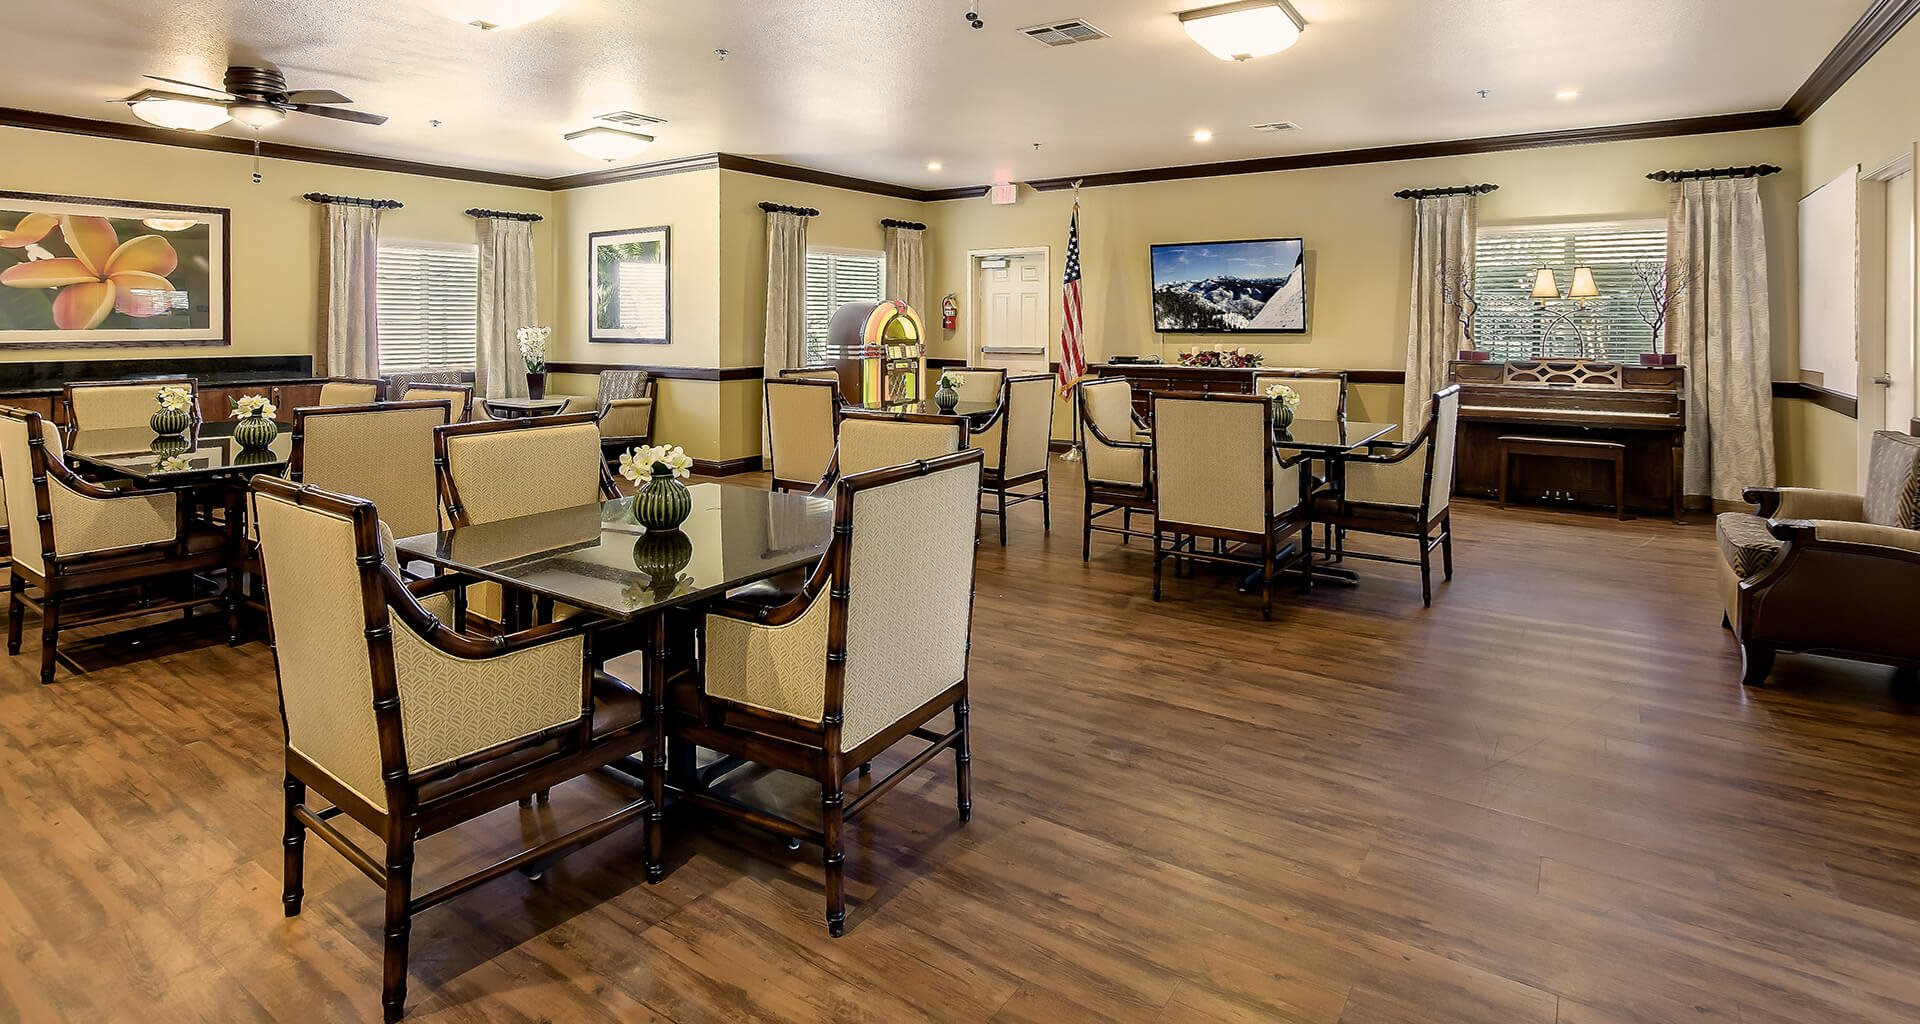 Well Balanced Social Calendar and Formal Dining Room at Pacifica Senior Living: Riverside Legacies Memory Care, Riverside, 92509